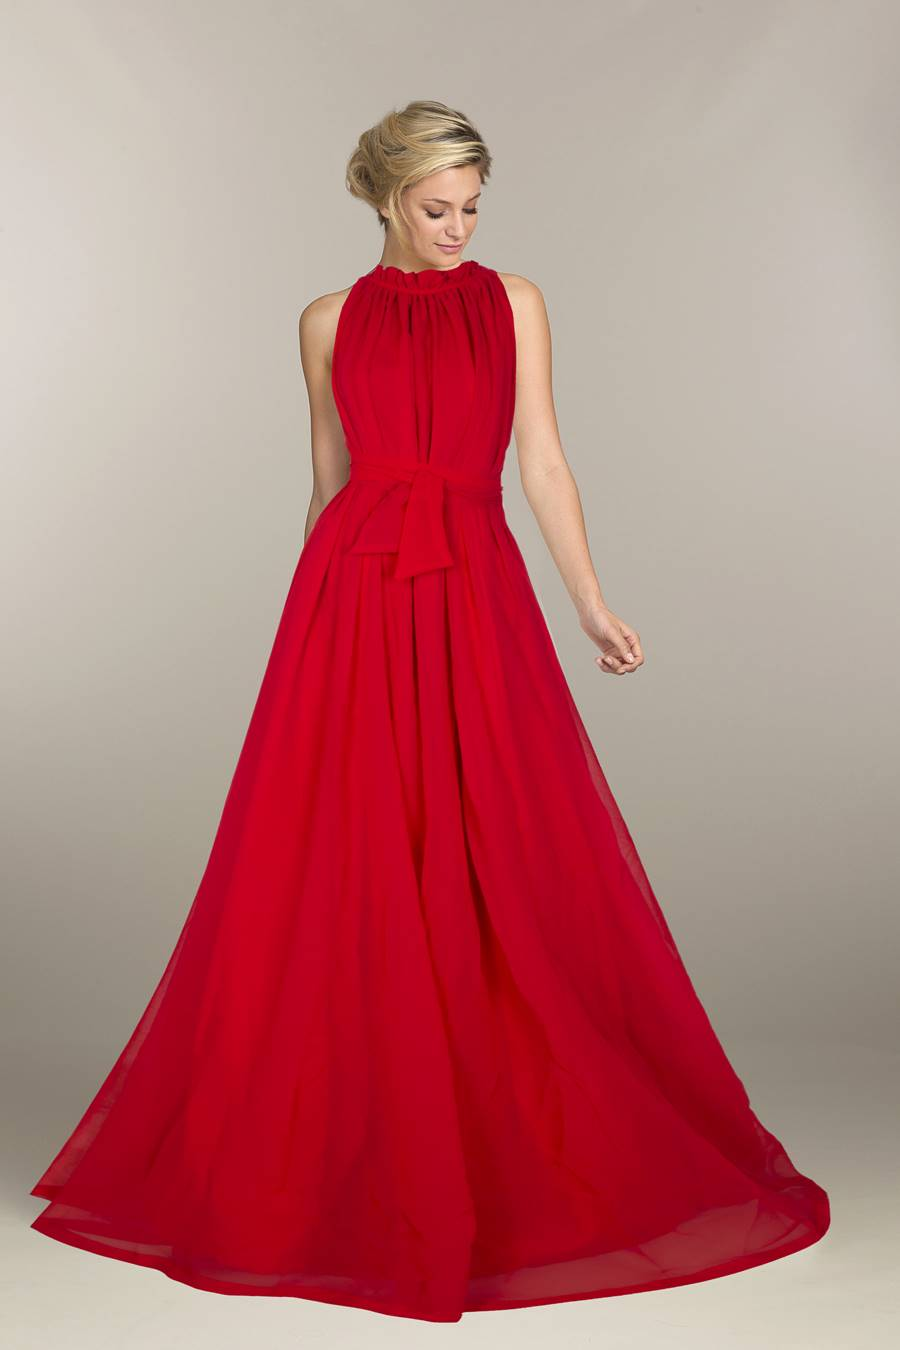 Exclusive Designer Royal Gown #G32 Dyna Red